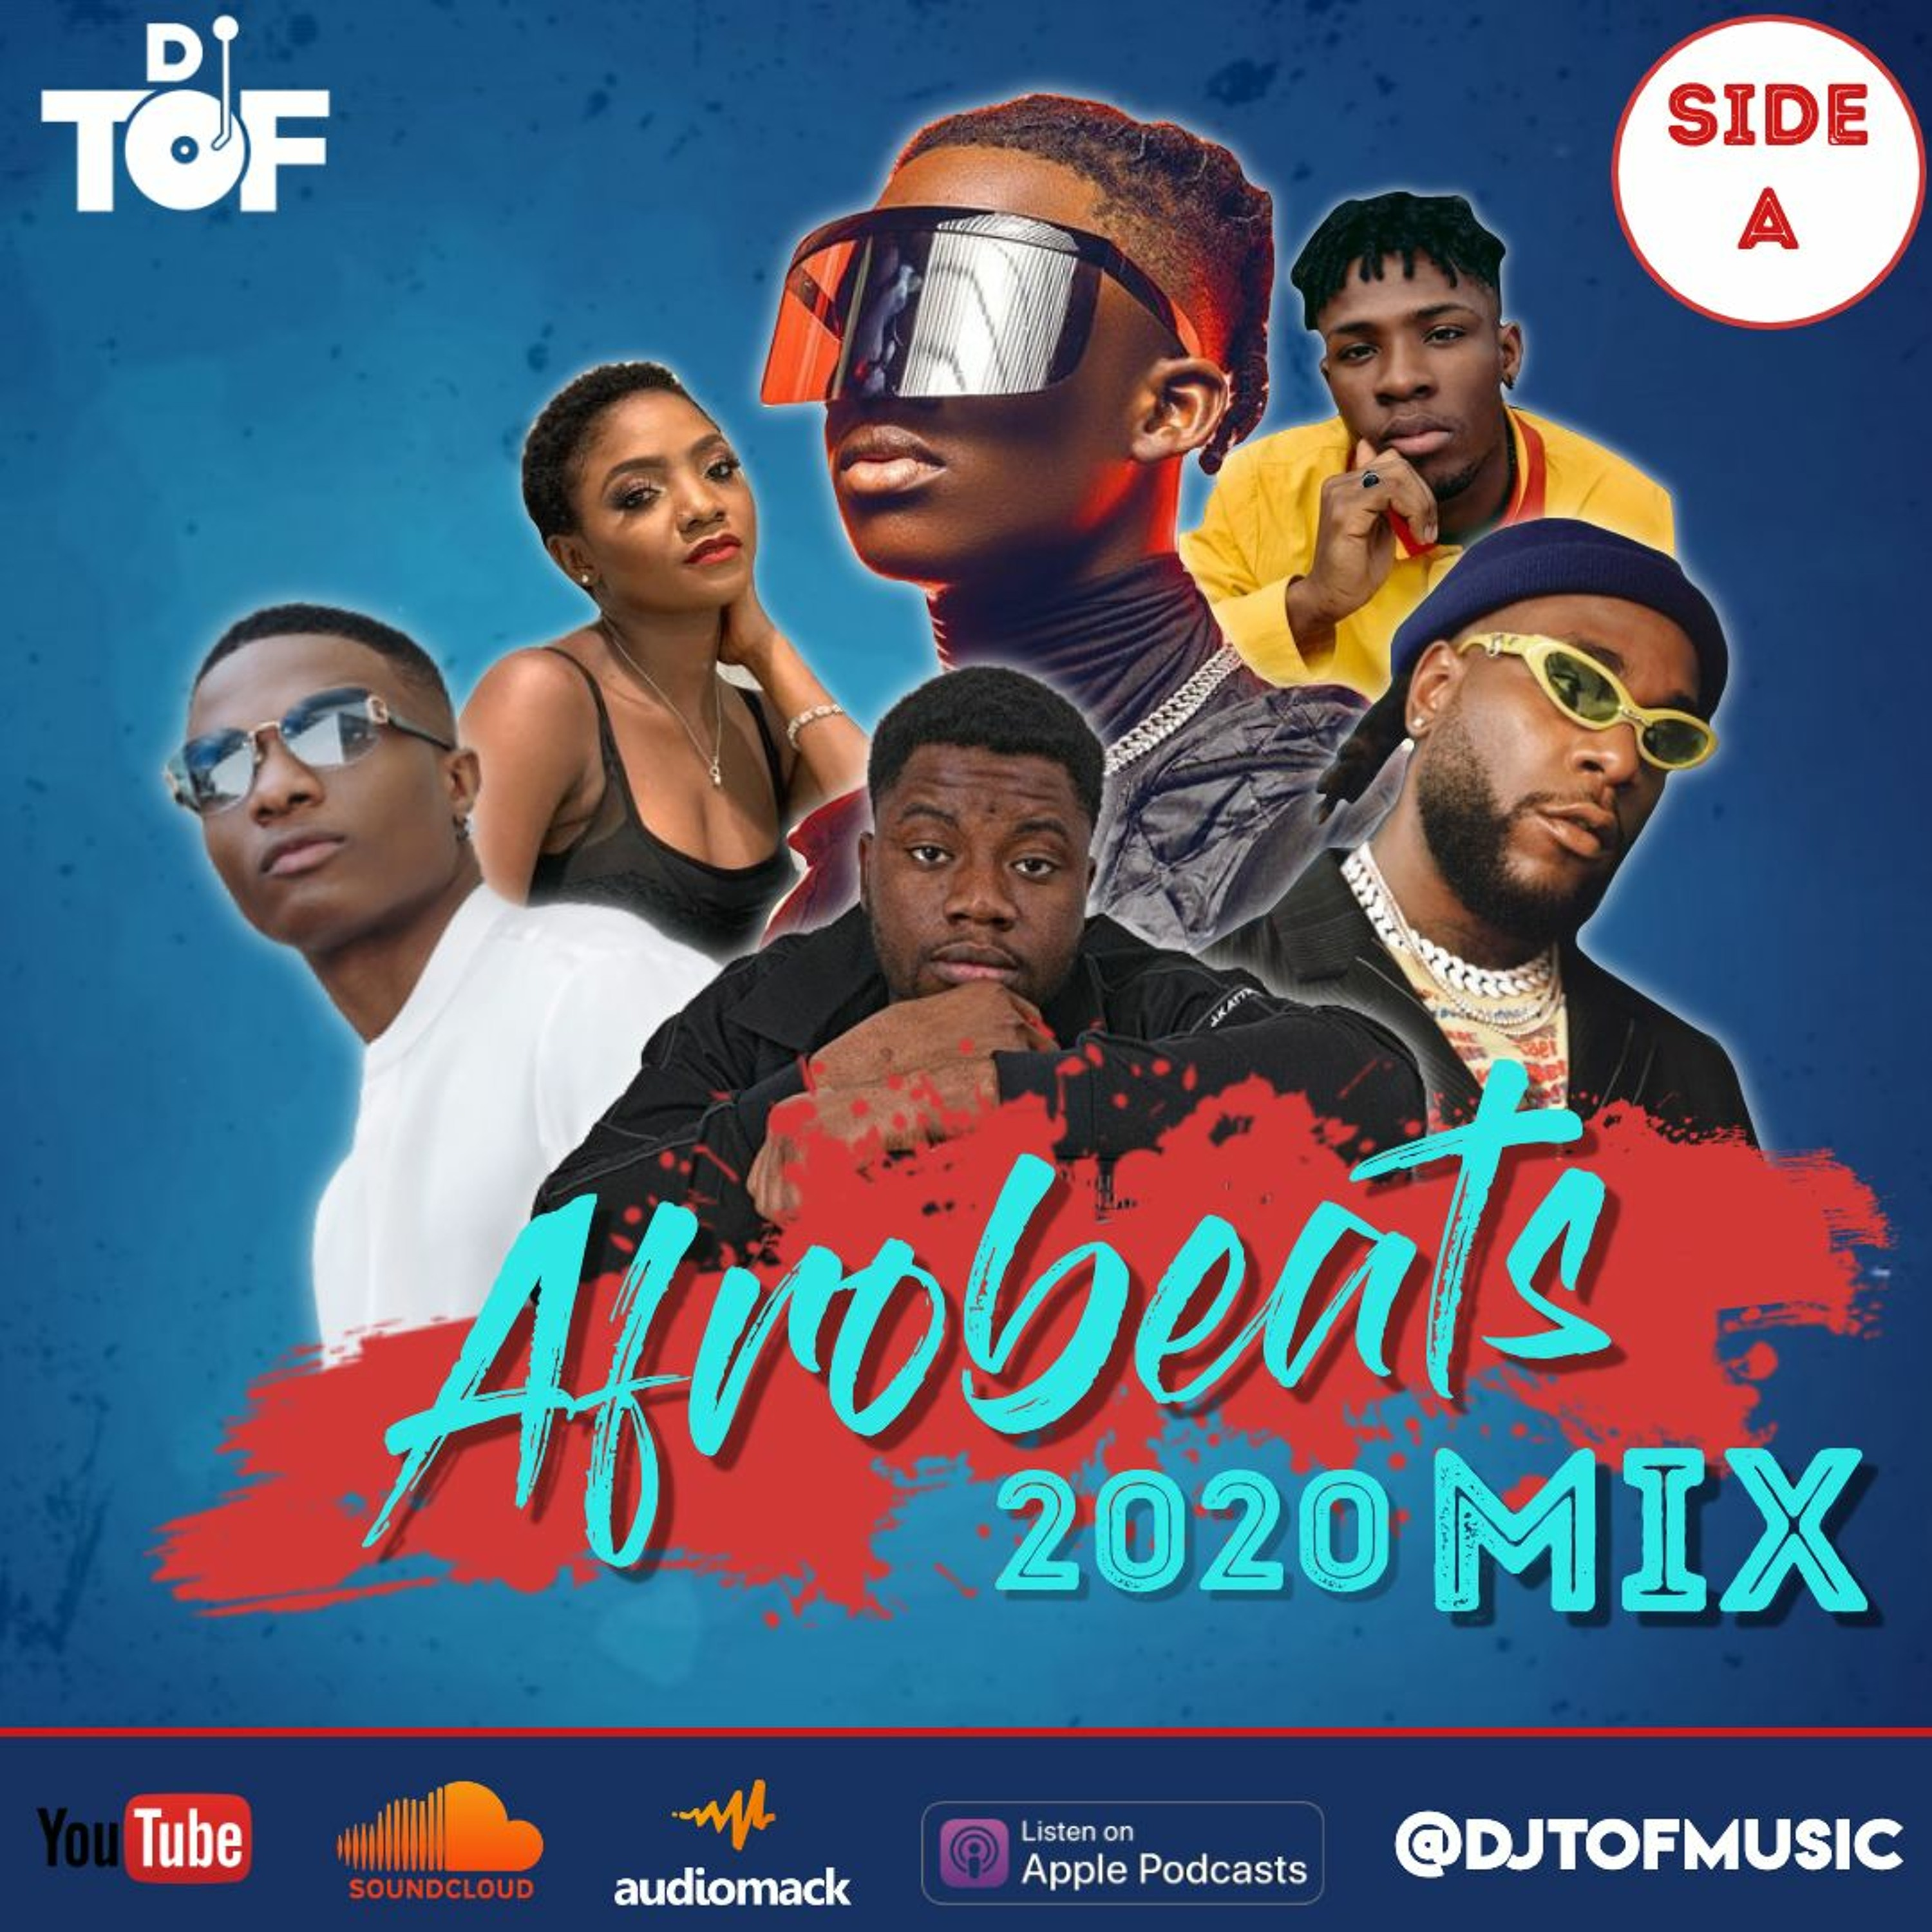 2020 Afrobeats Mix 2 - SIDE A